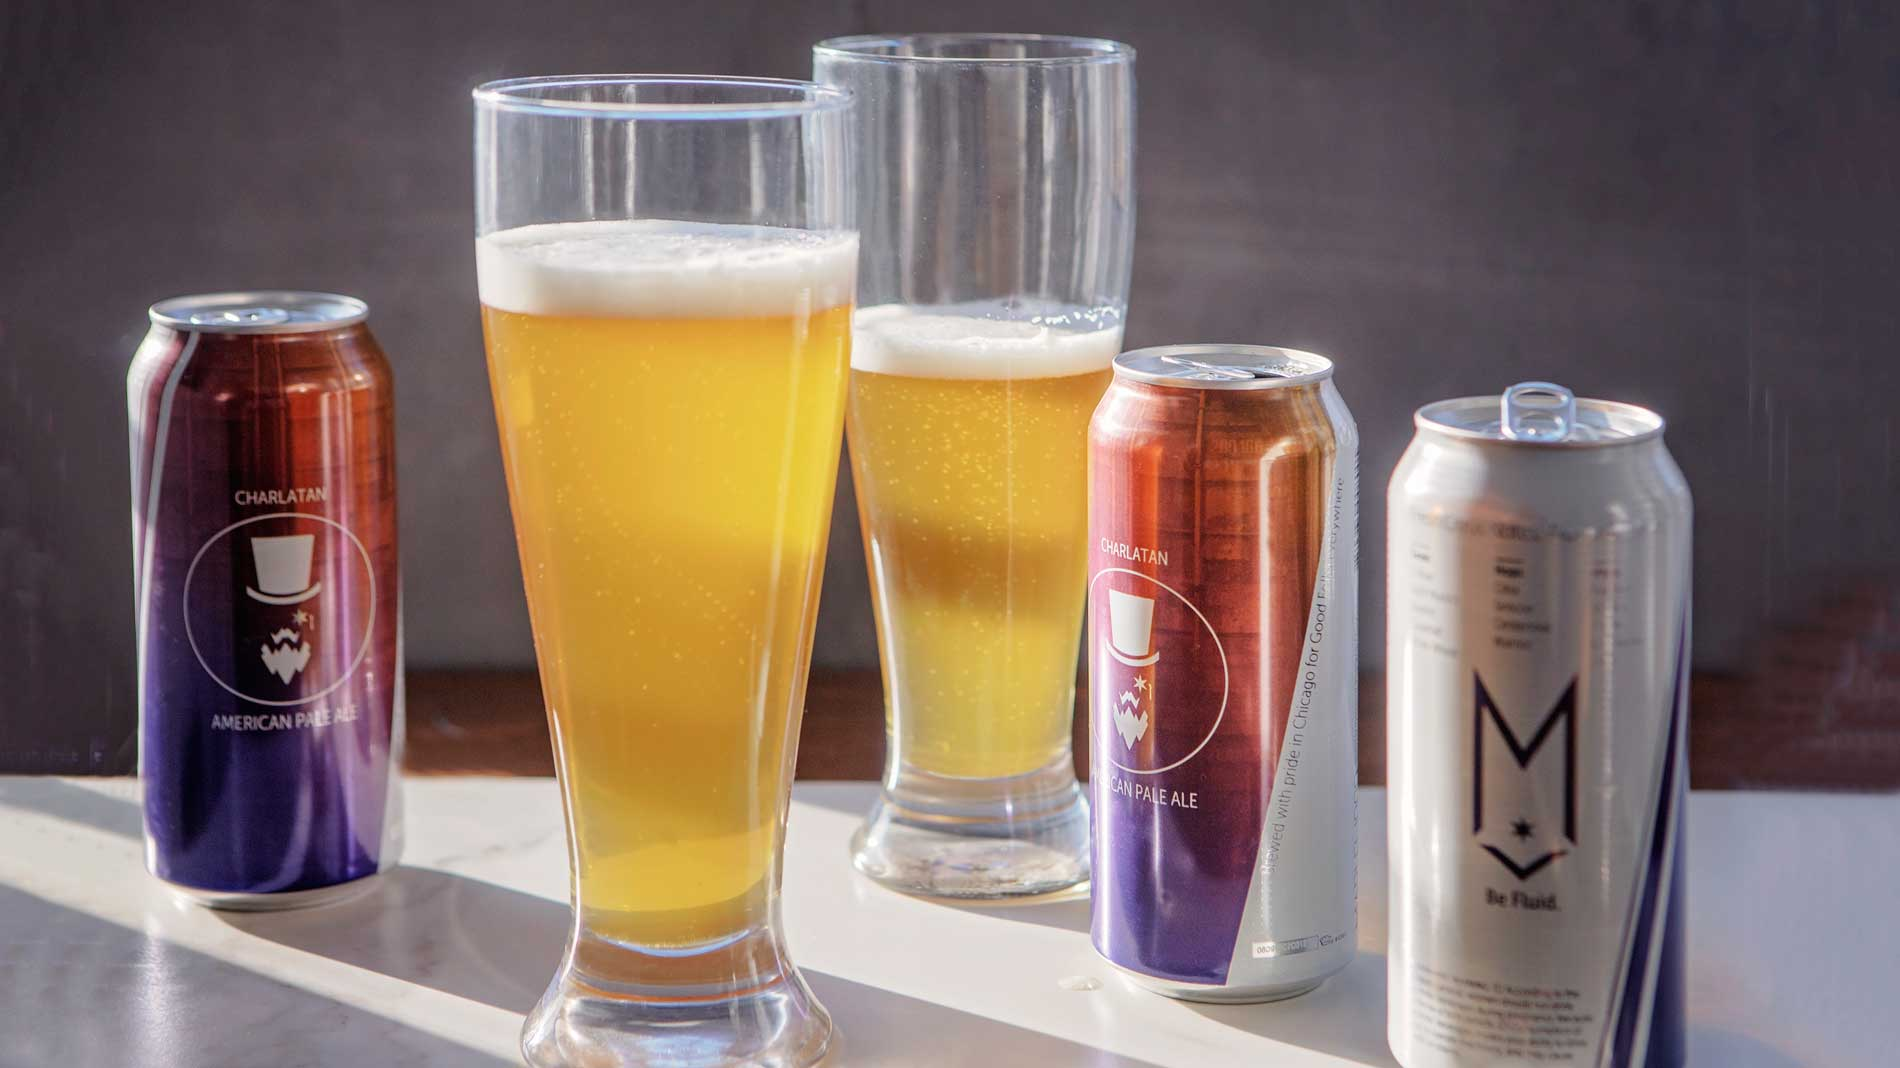 Three cans of beer with two pilsner glasses filled with beer